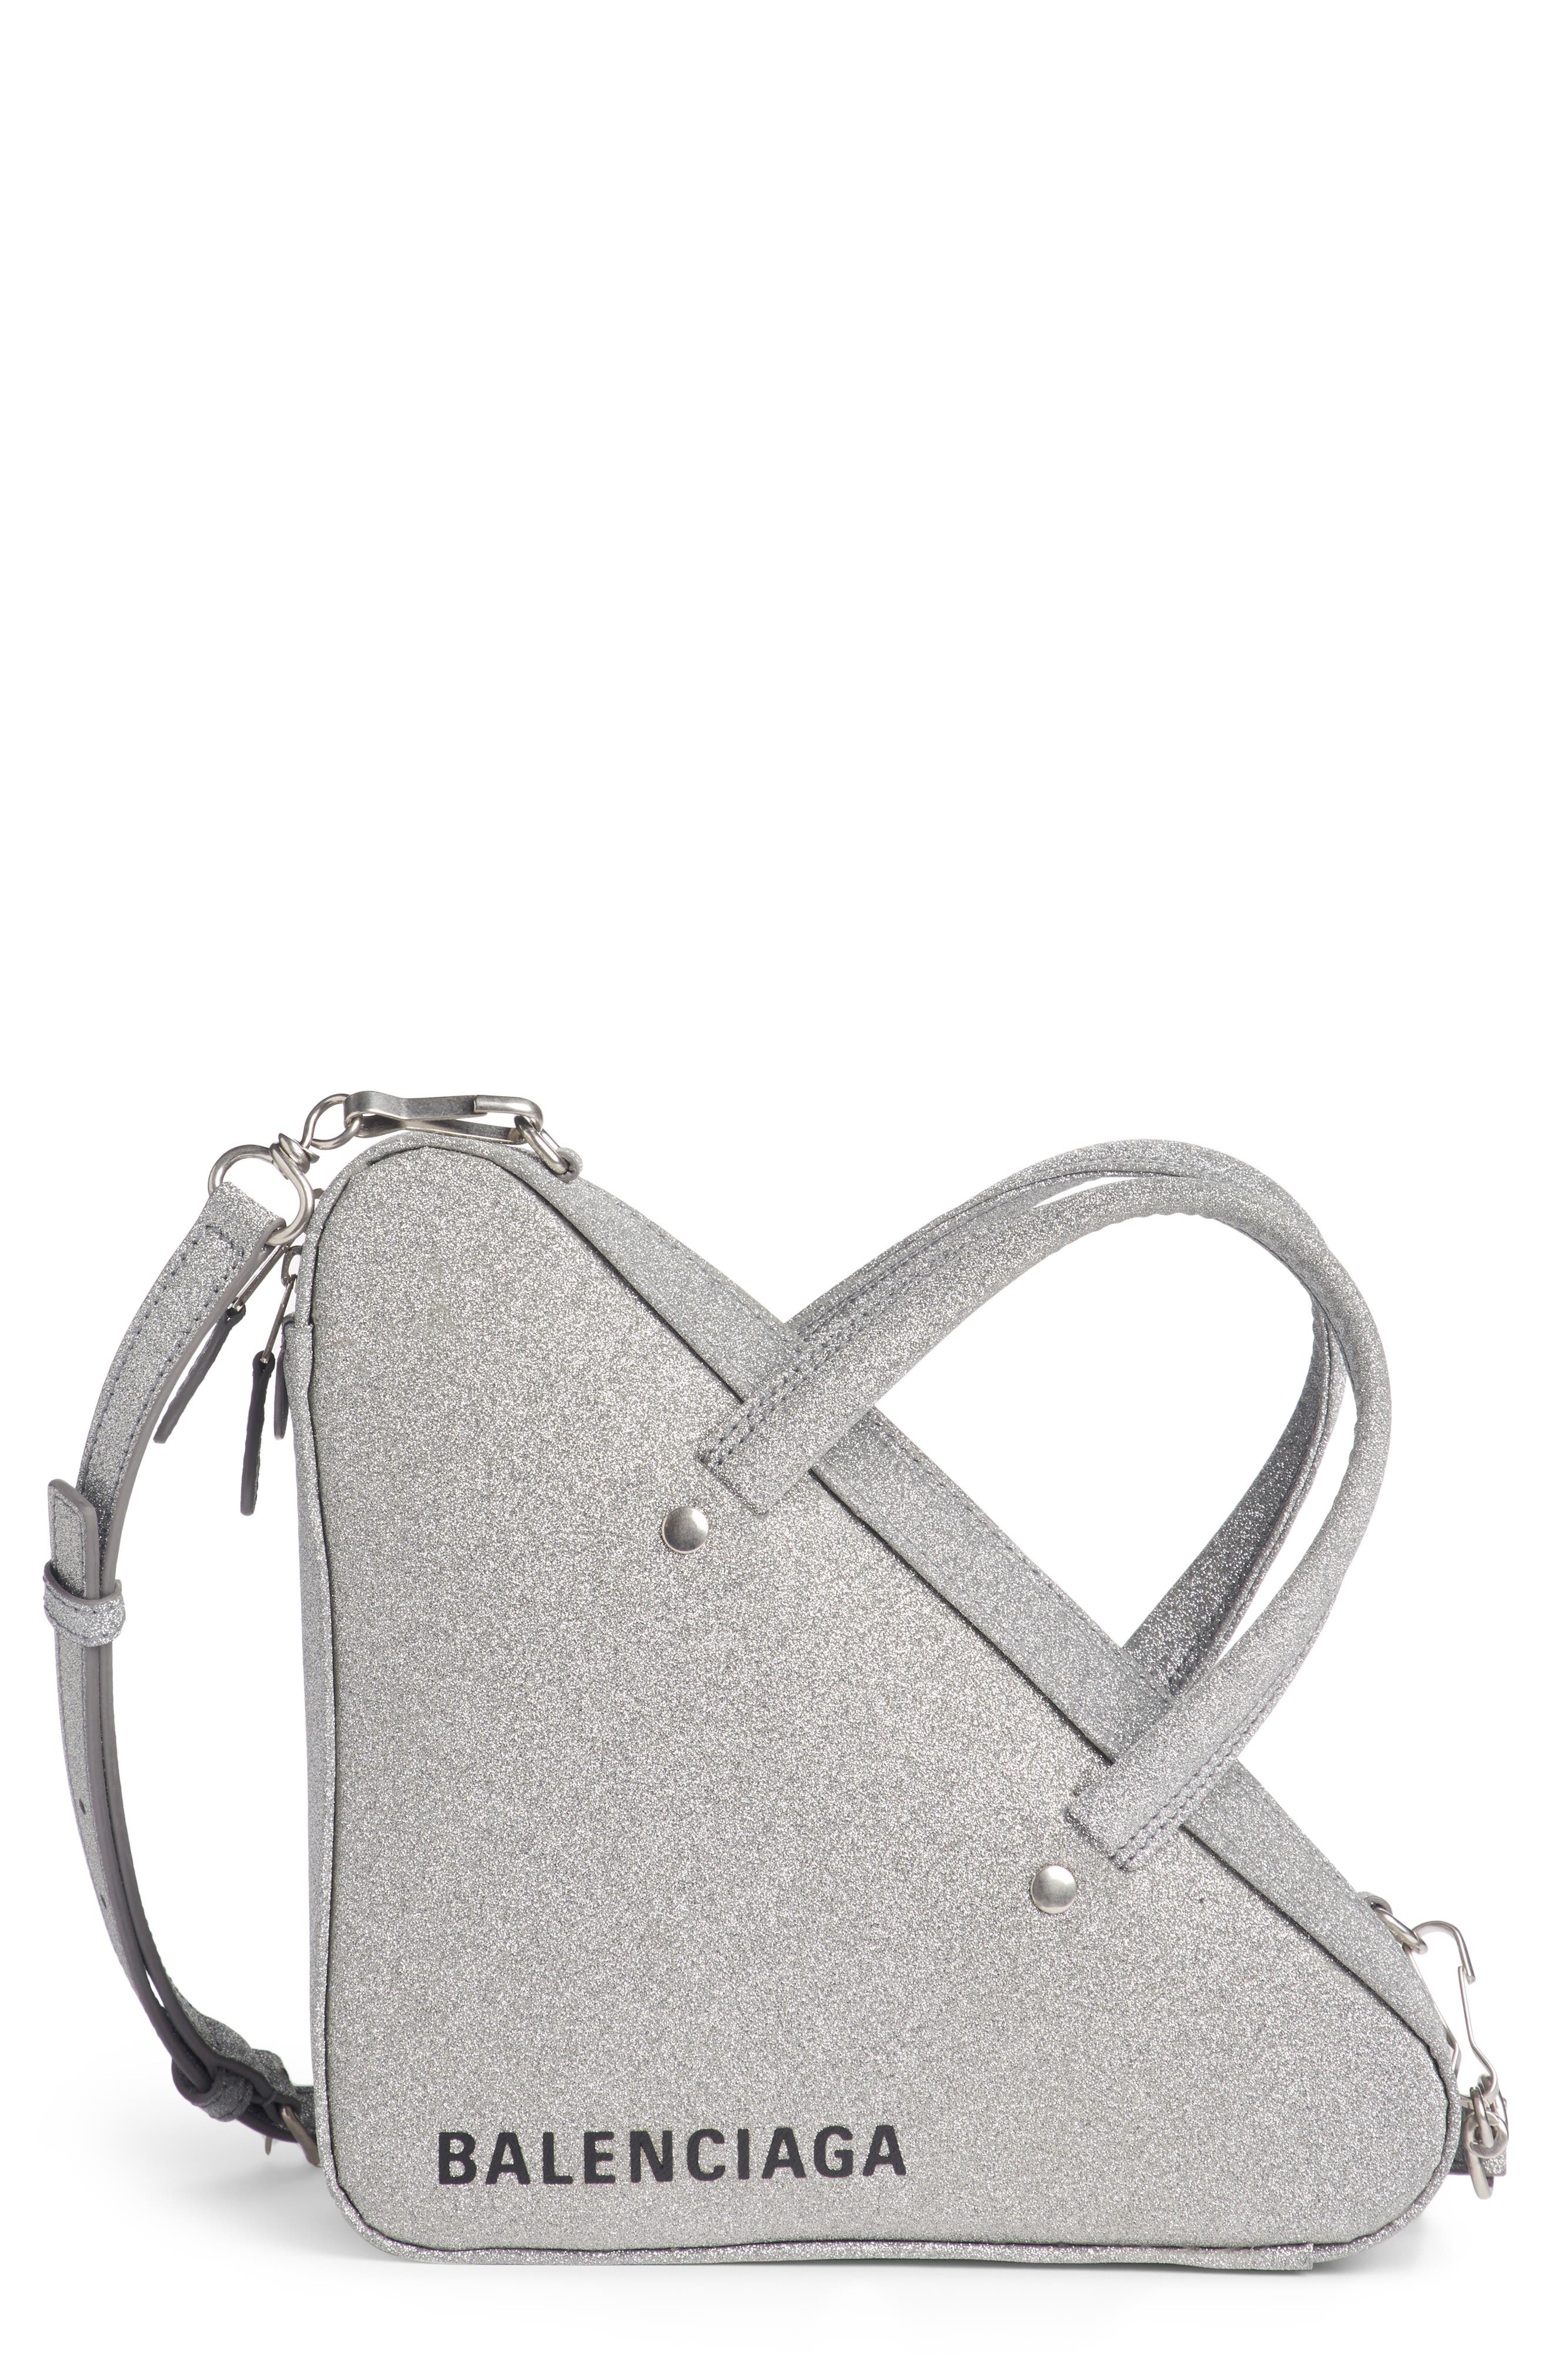 Extra Small Glitter Triangle Leather Bag,                             Main thumbnail 1, color,                             Argent/ Noir